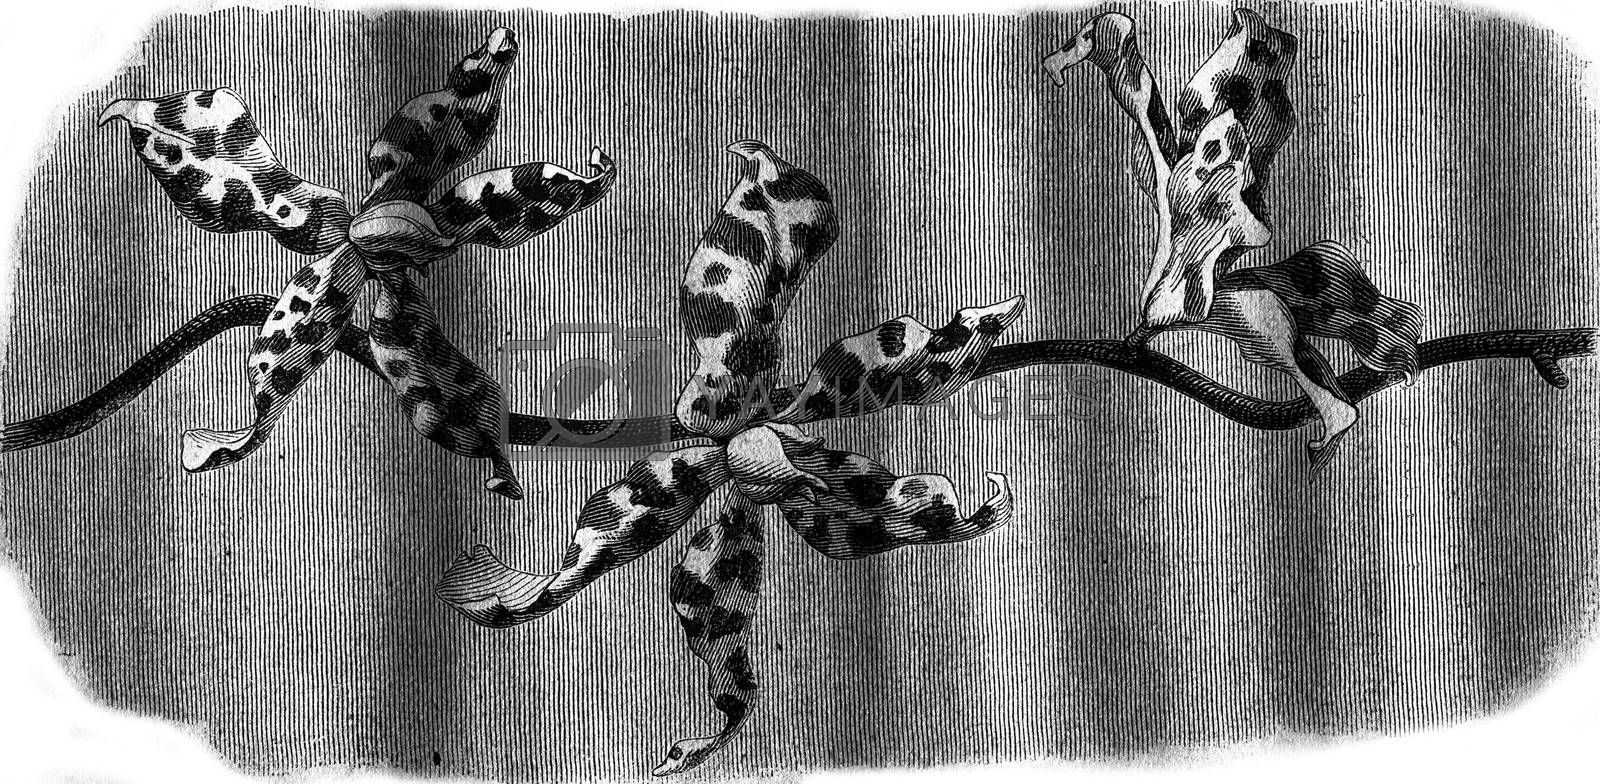 Orchid, Flowers Renanthera Lowii, vintage engraved illustration. Magasin Pittoresque 1876.